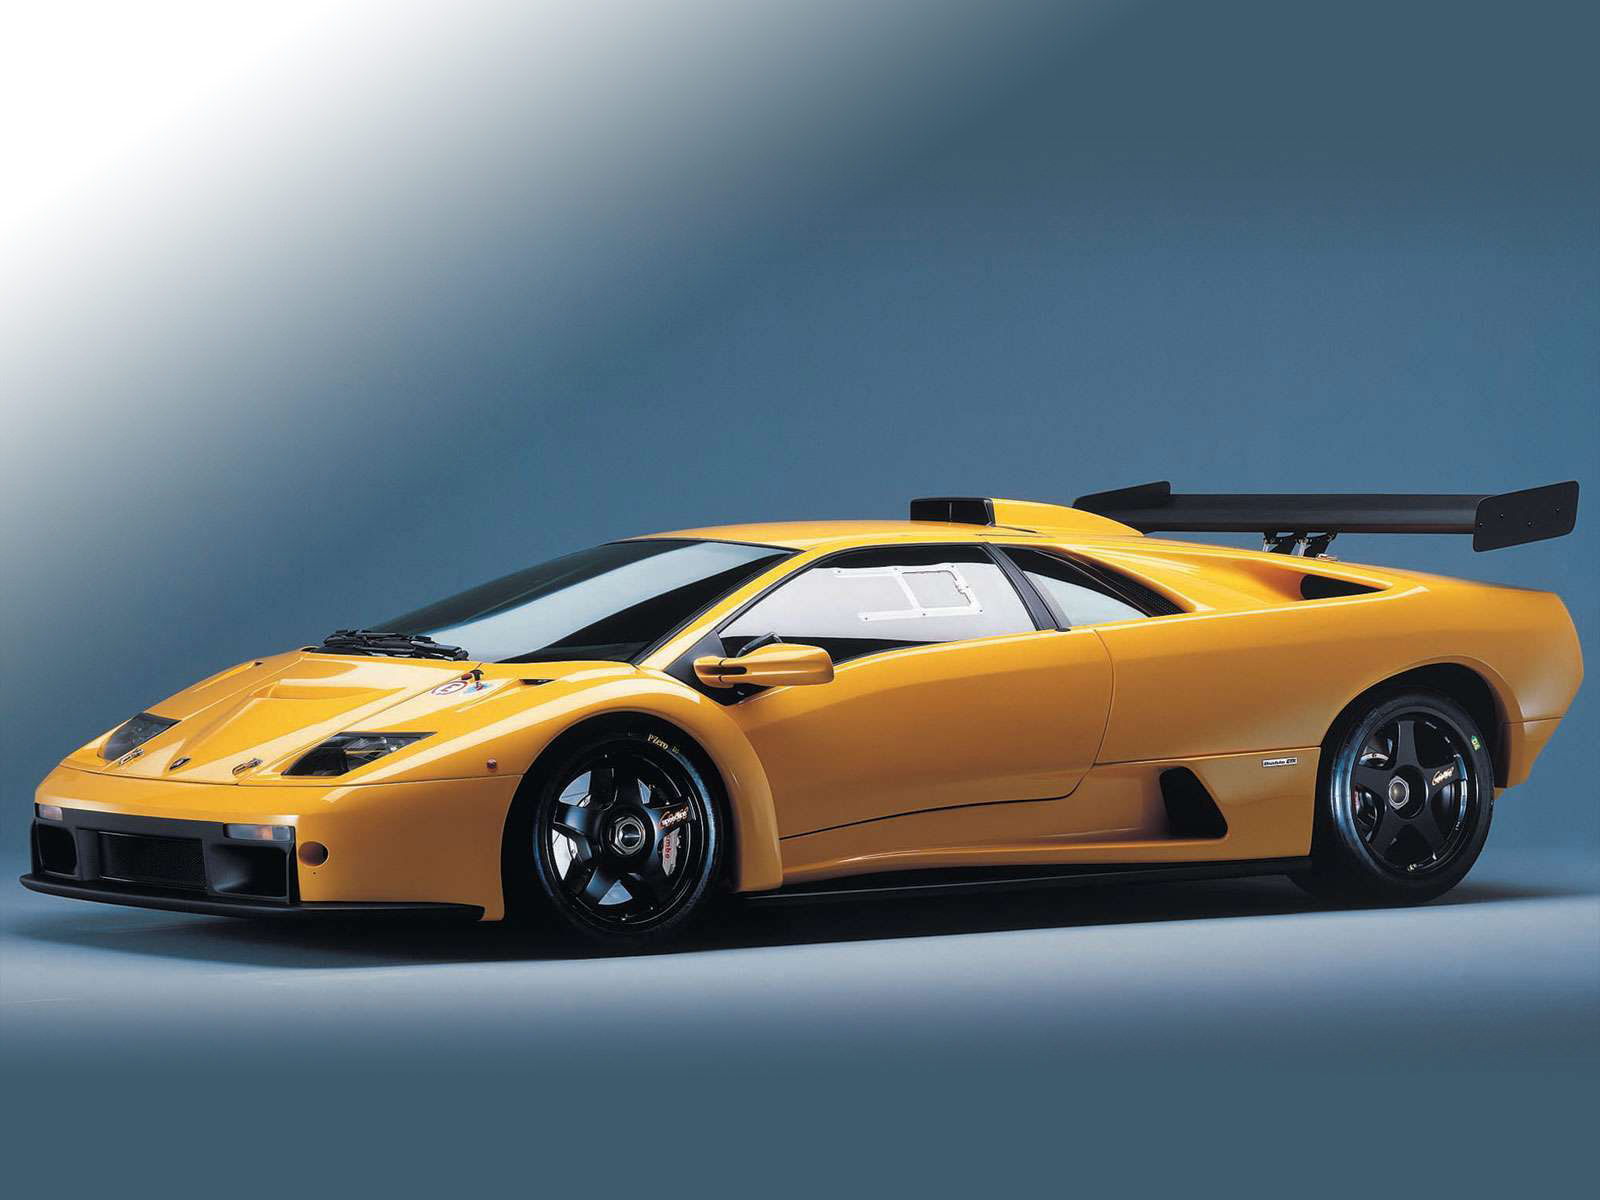 1999 Lamborghini Diablo Gtr Accident Lawyers Info Pictures